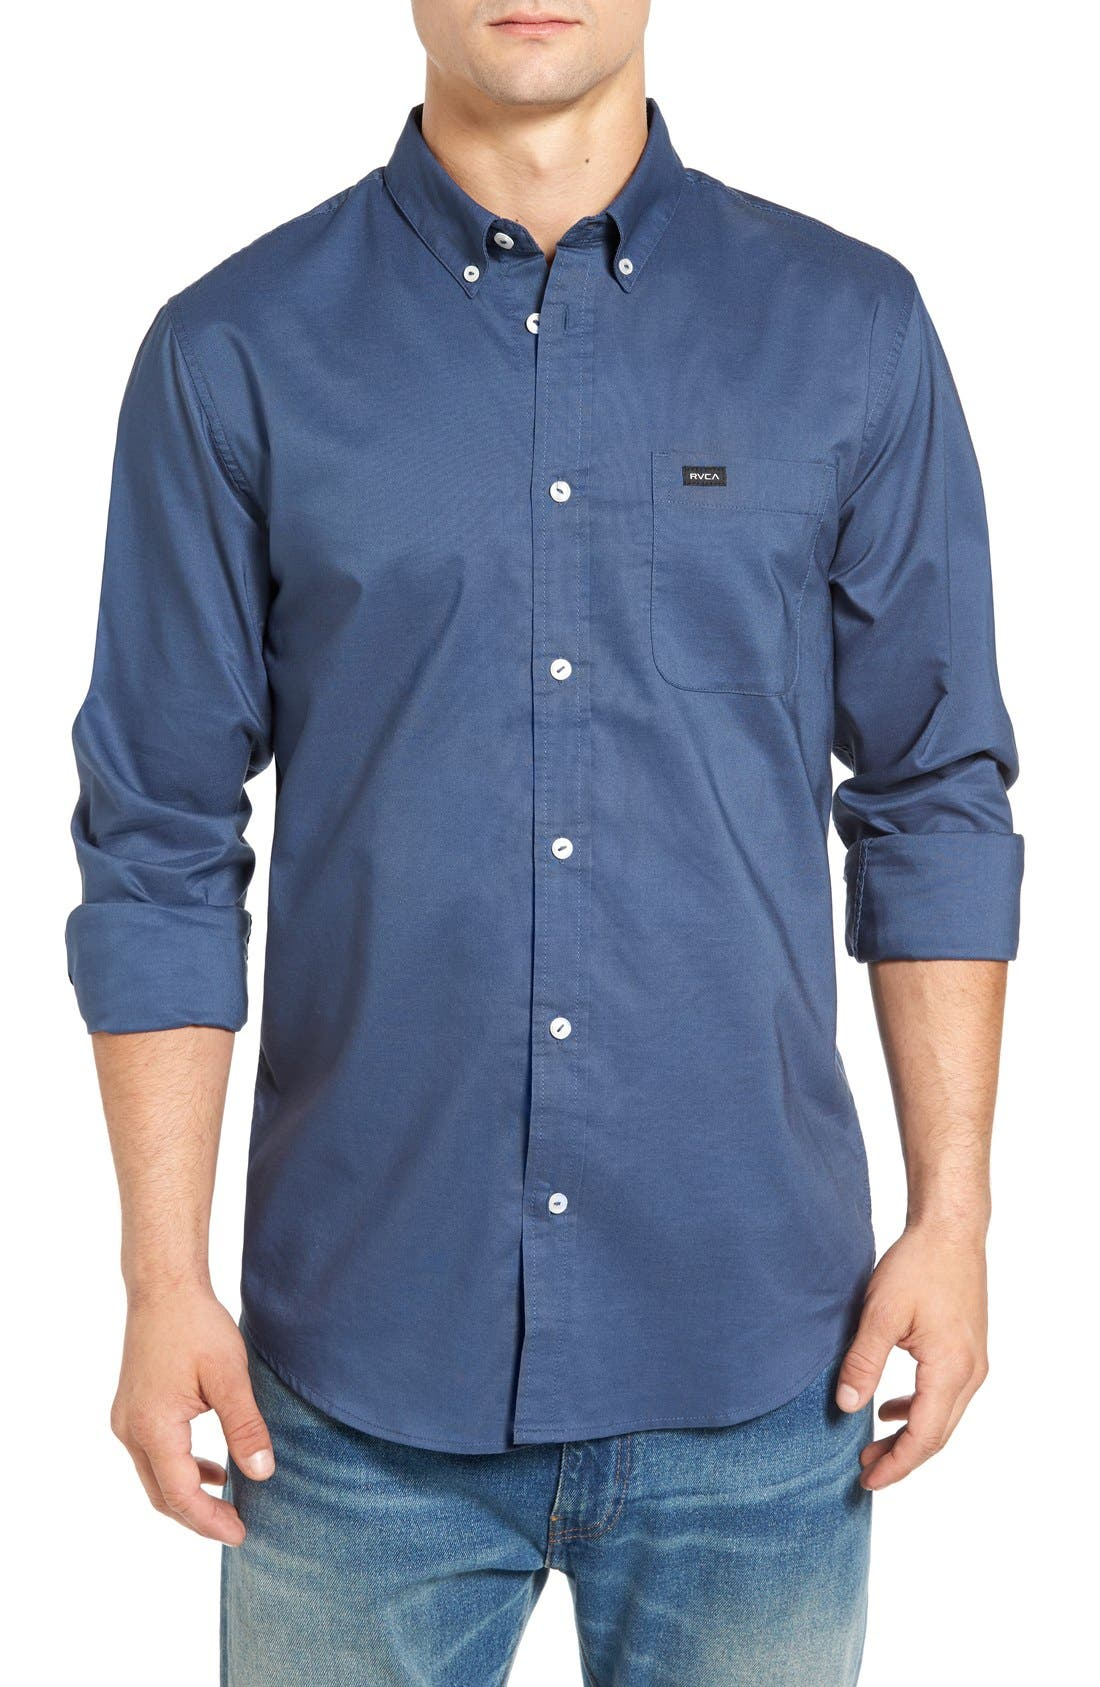 Alternate Image 1 Selected - RVCA 'That'll Do' Slim Fit Oxford Shirt